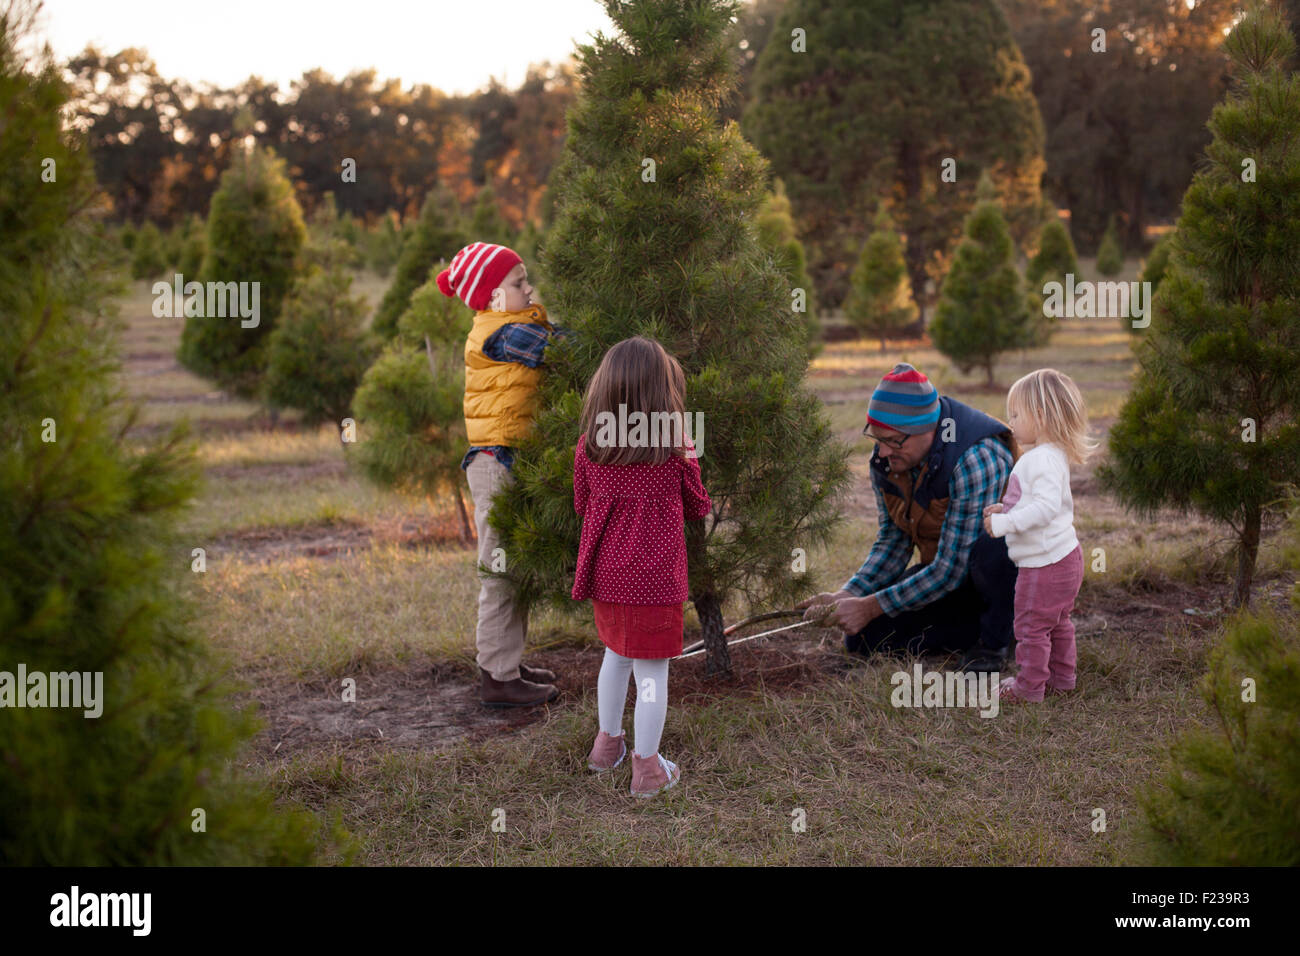 364988332 Cutting Down Christmas Tree Stock Photos   Cutting Down Christmas ...